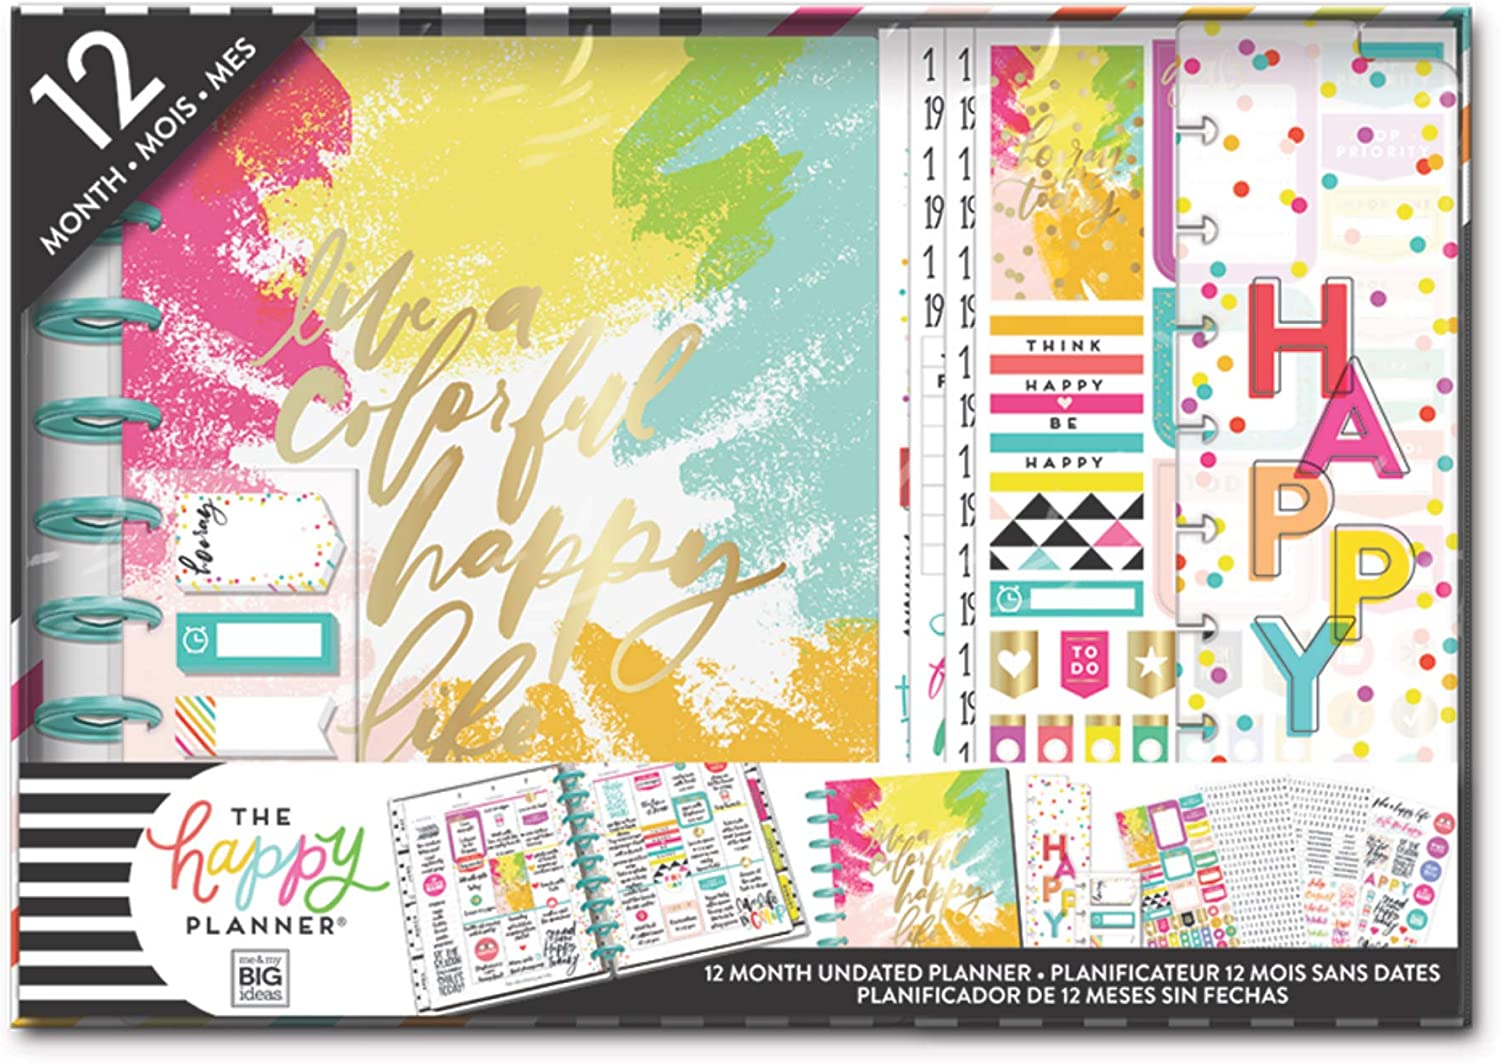 me & my BIG ideas The Happy Planner Box Kit - Live A Happy Colorful Life Theme - 12 Month Undated - Monthly Layout - 552 Stickers, 1 Bookmark, 3 Sticky Note Pads, 12 Dividers - Classic Size